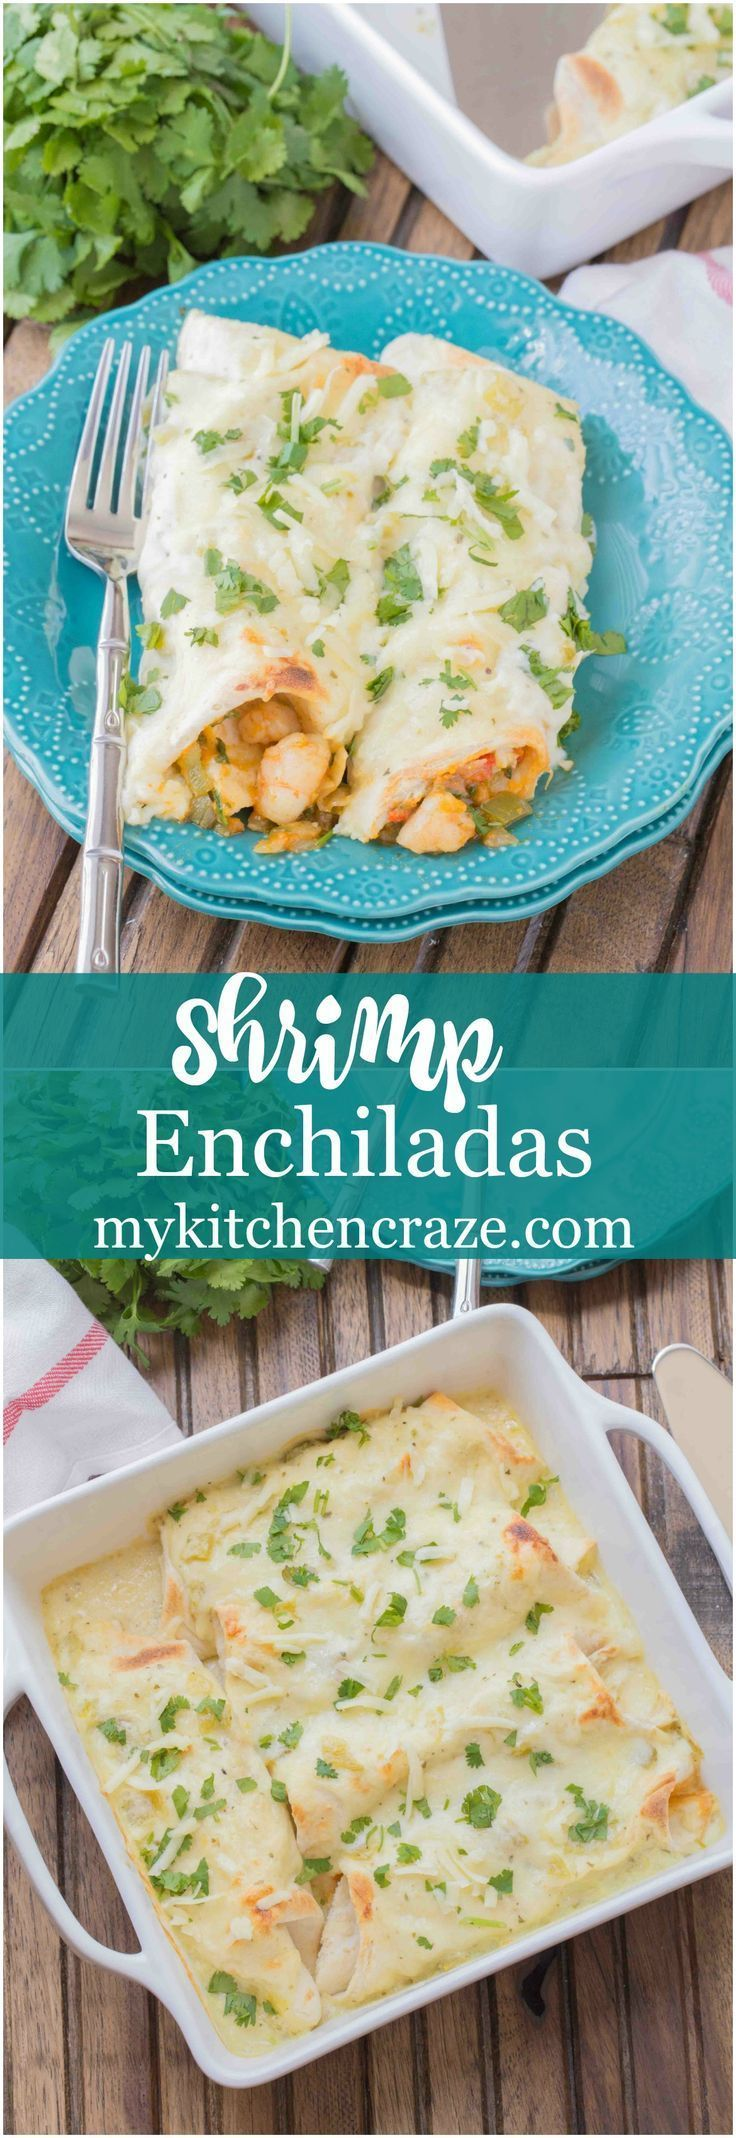 Shrimp Enchiladas ~ Filled with tender, flavorful shrimp then topped with a delicious homemade creamy sauce. You're going to love these enchiladas!